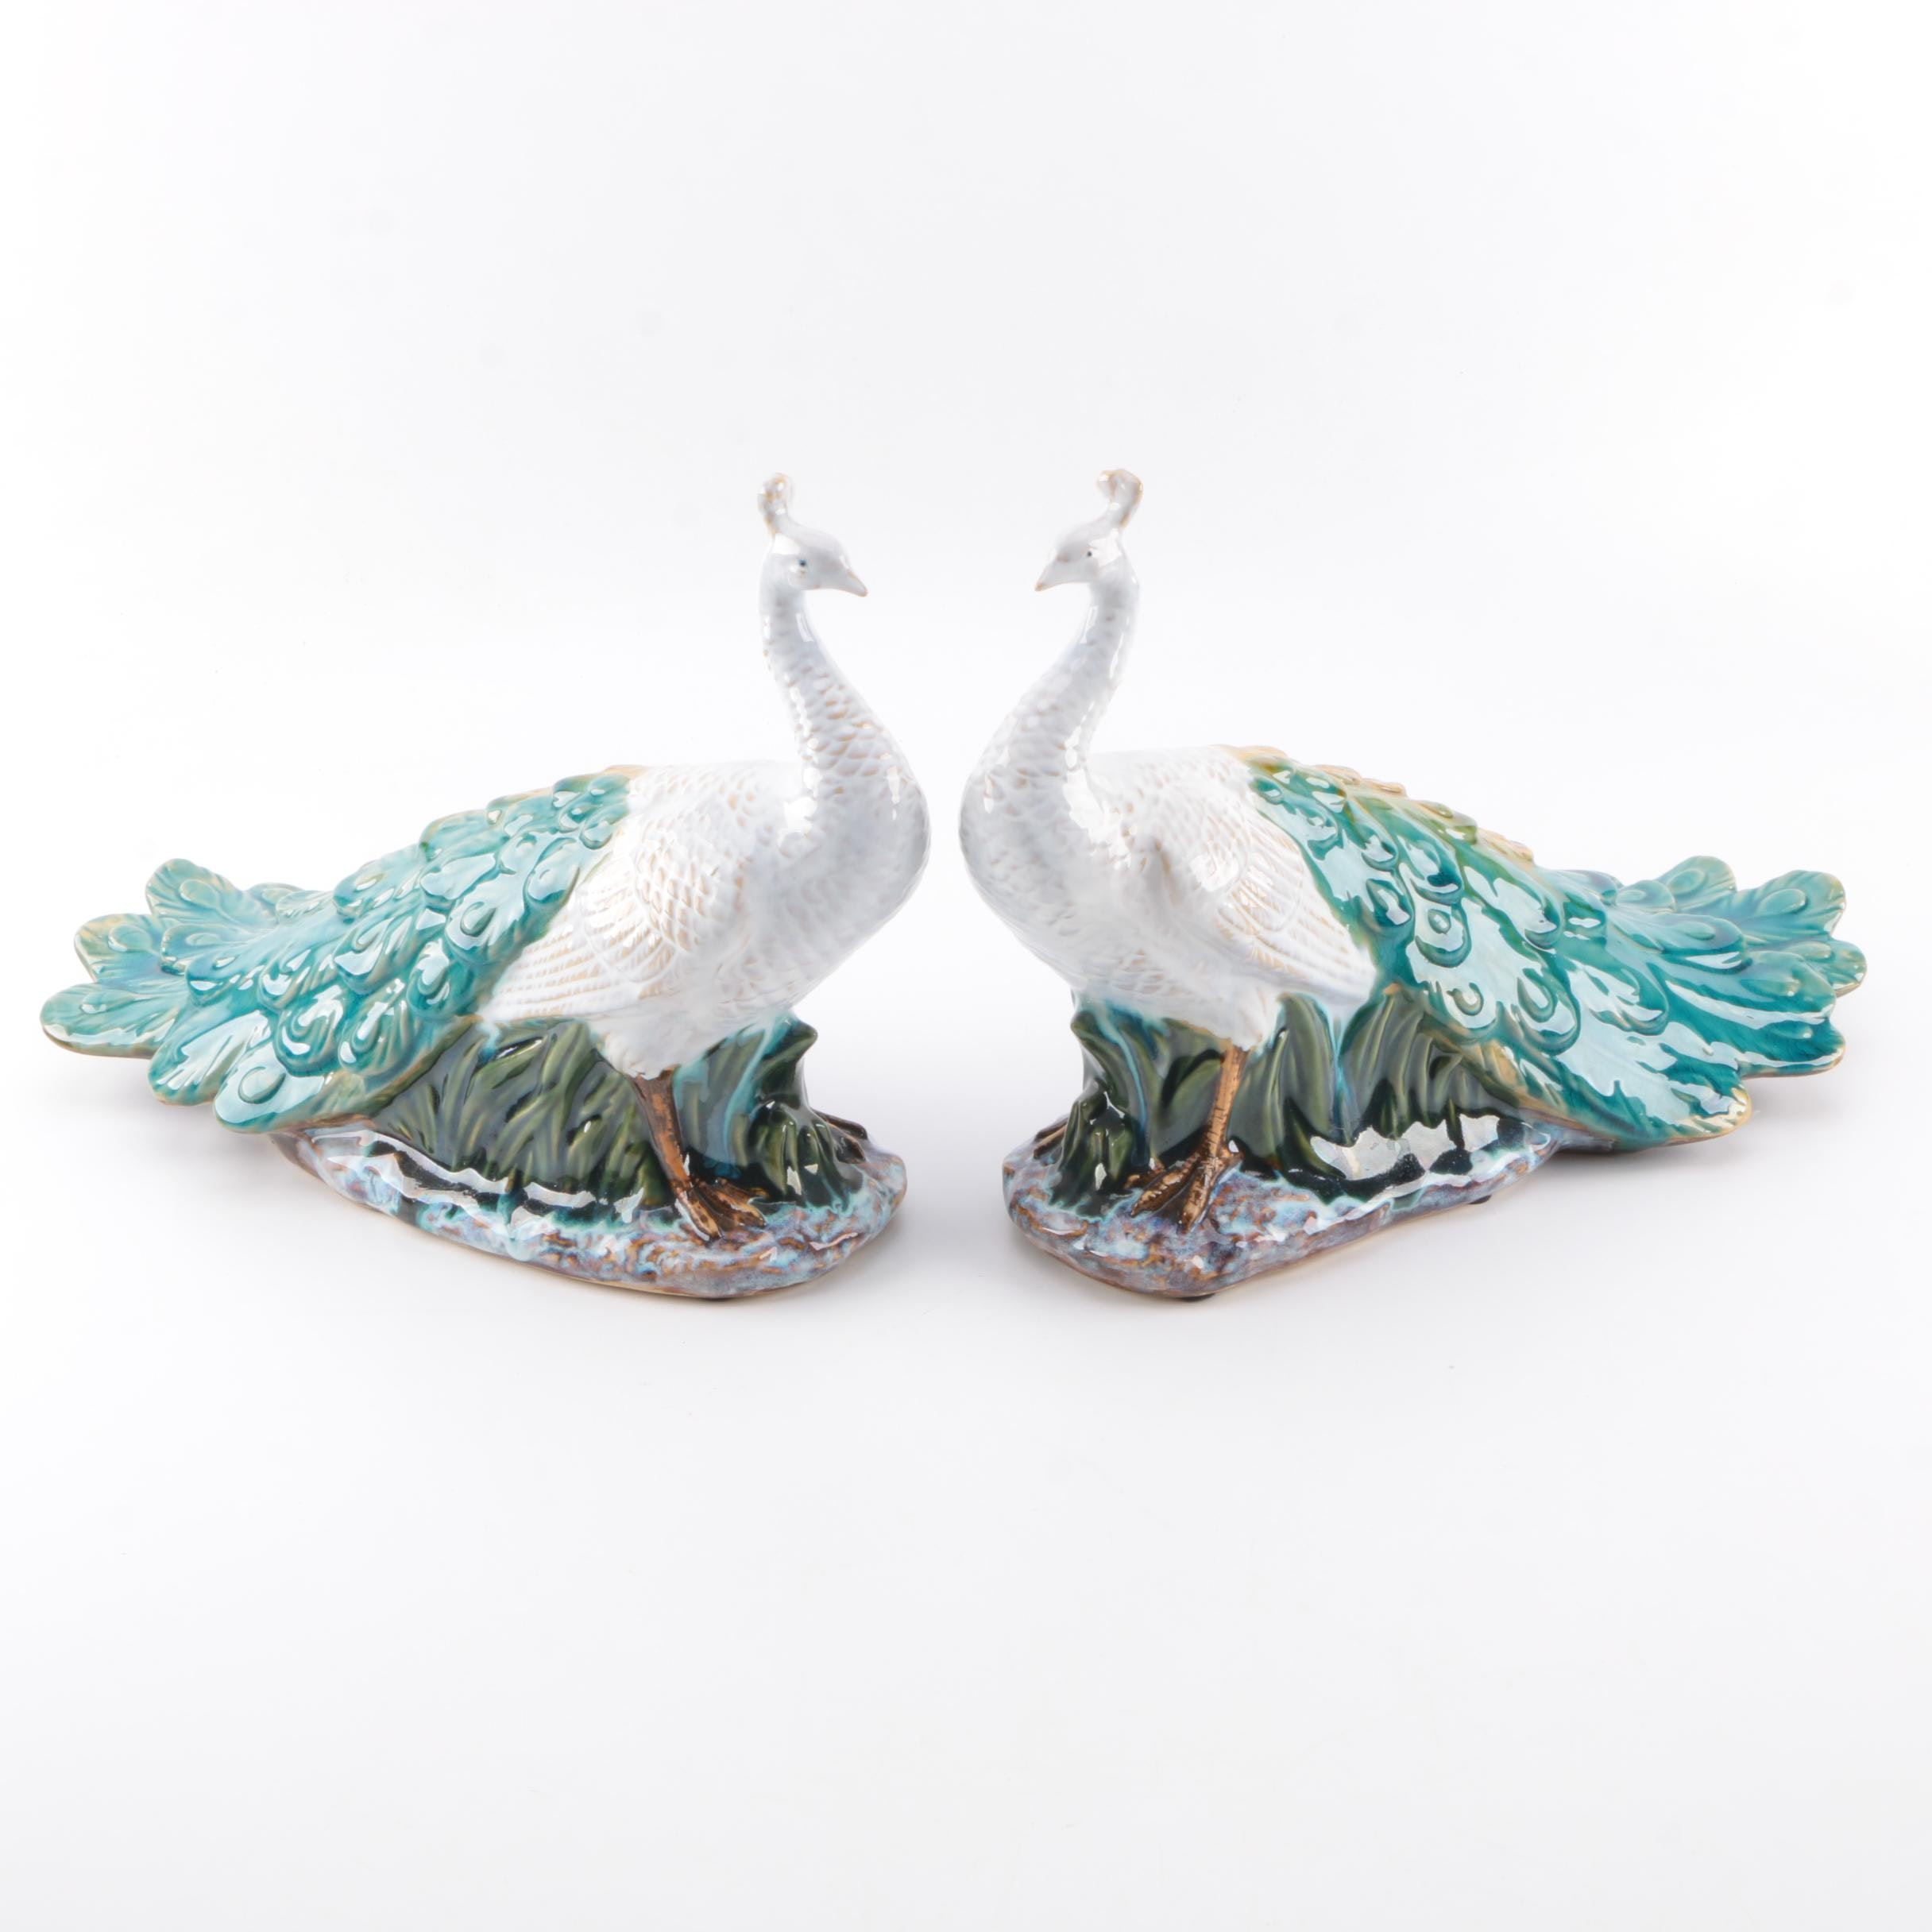 Ceramic Peacock Figurine Pair